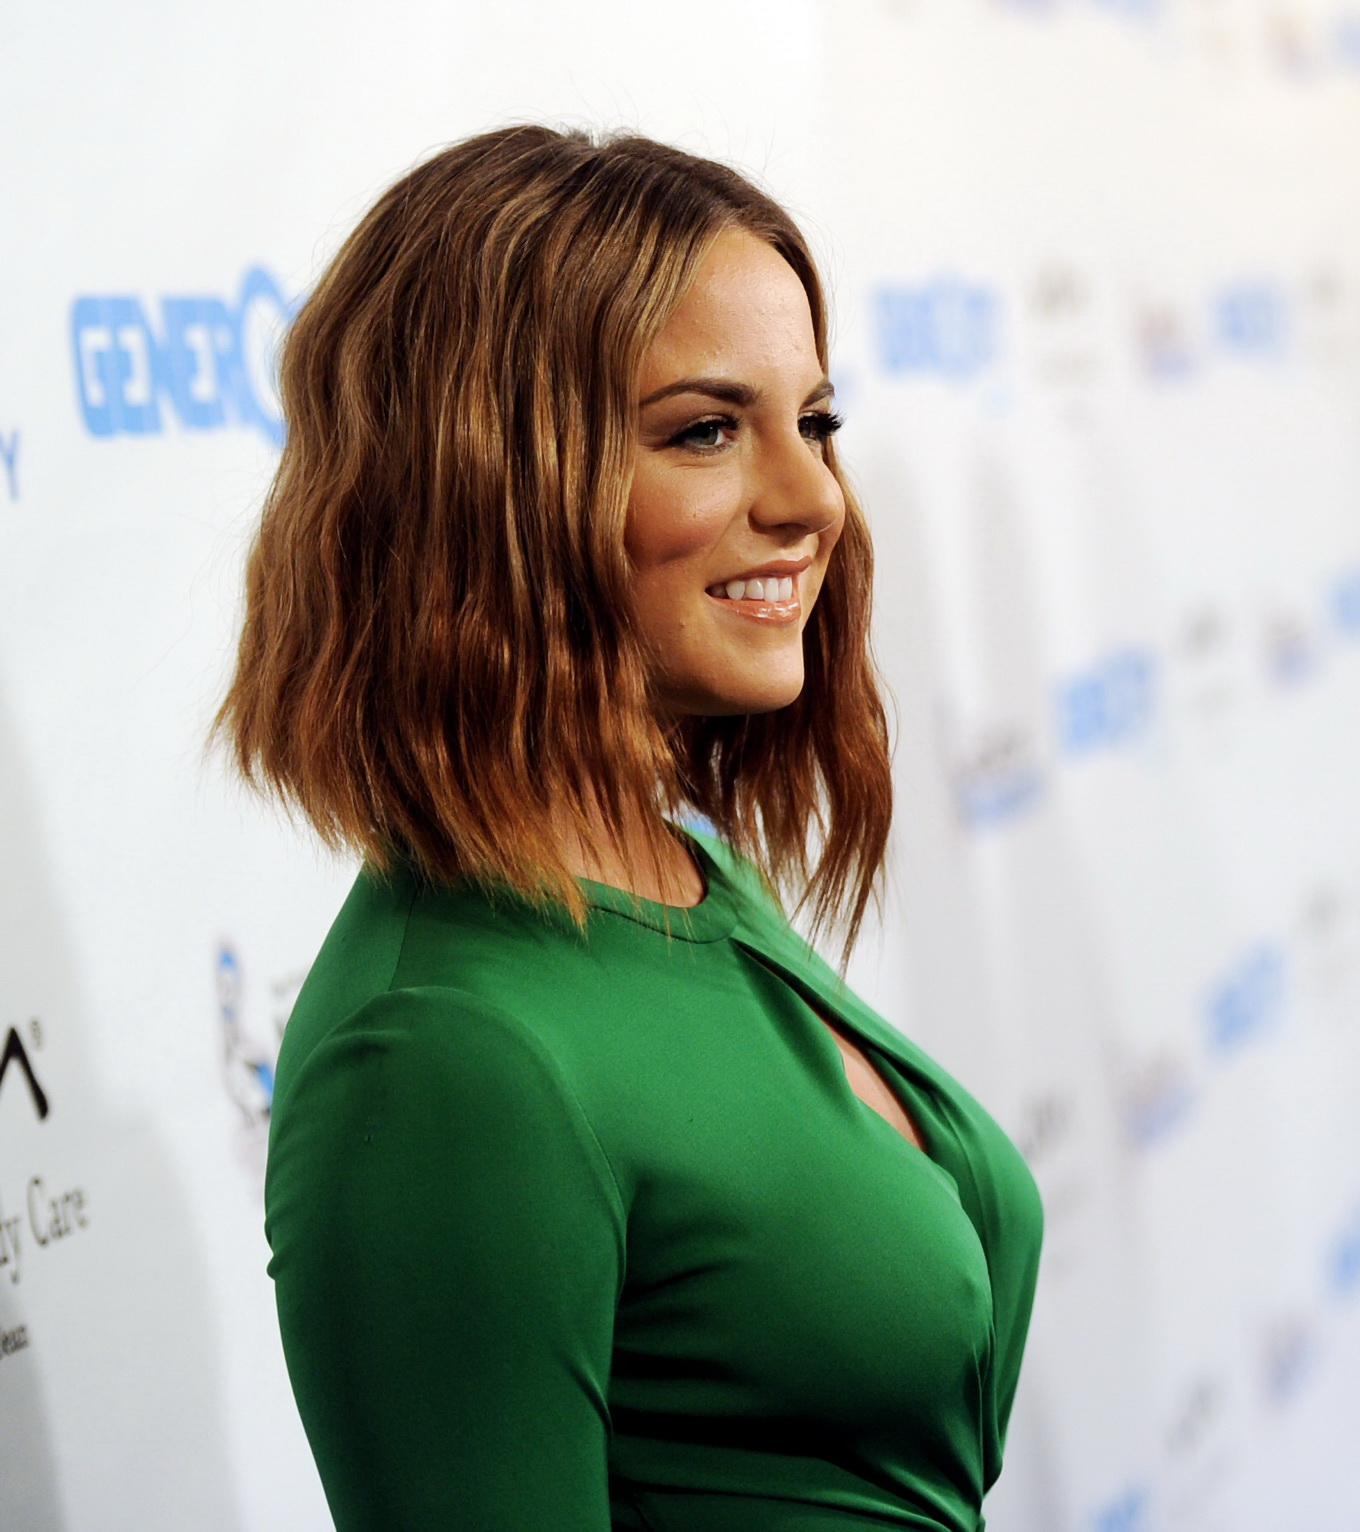 Jojo boobs levesque clevage nude vid. loved